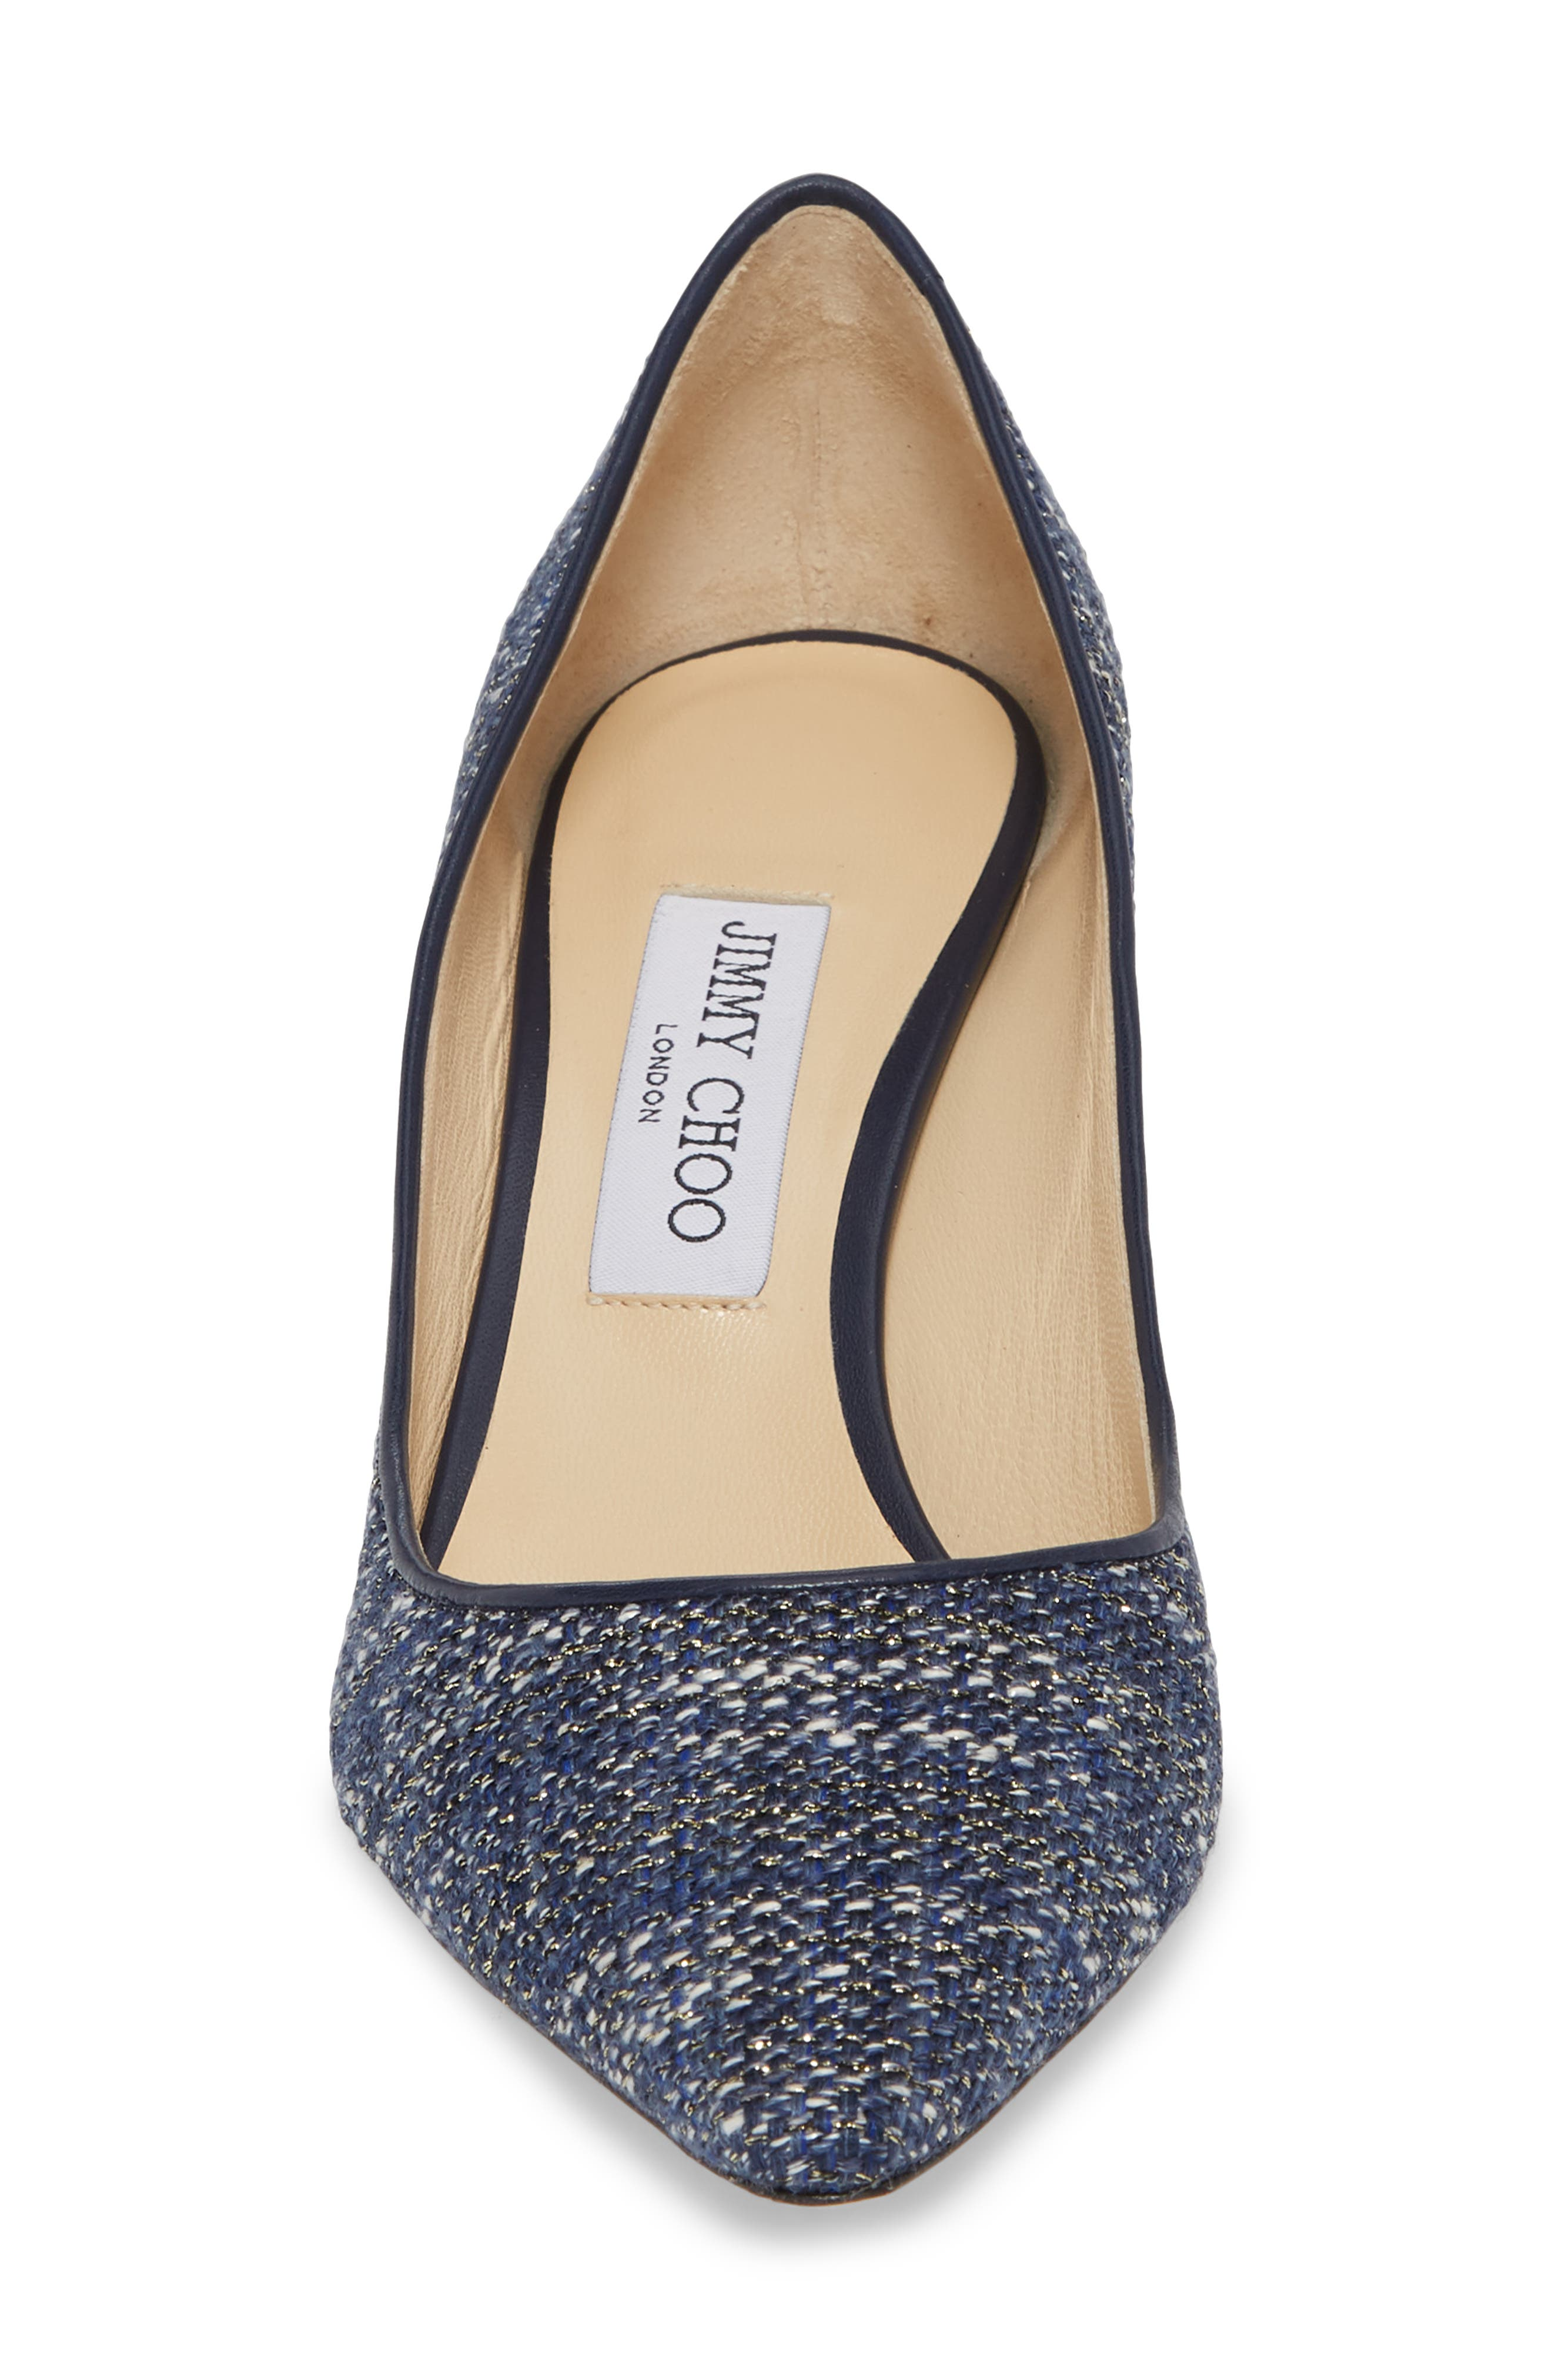 Romy Woven Pointy Toe Pump,                             Alternate thumbnail 4, color,                             410